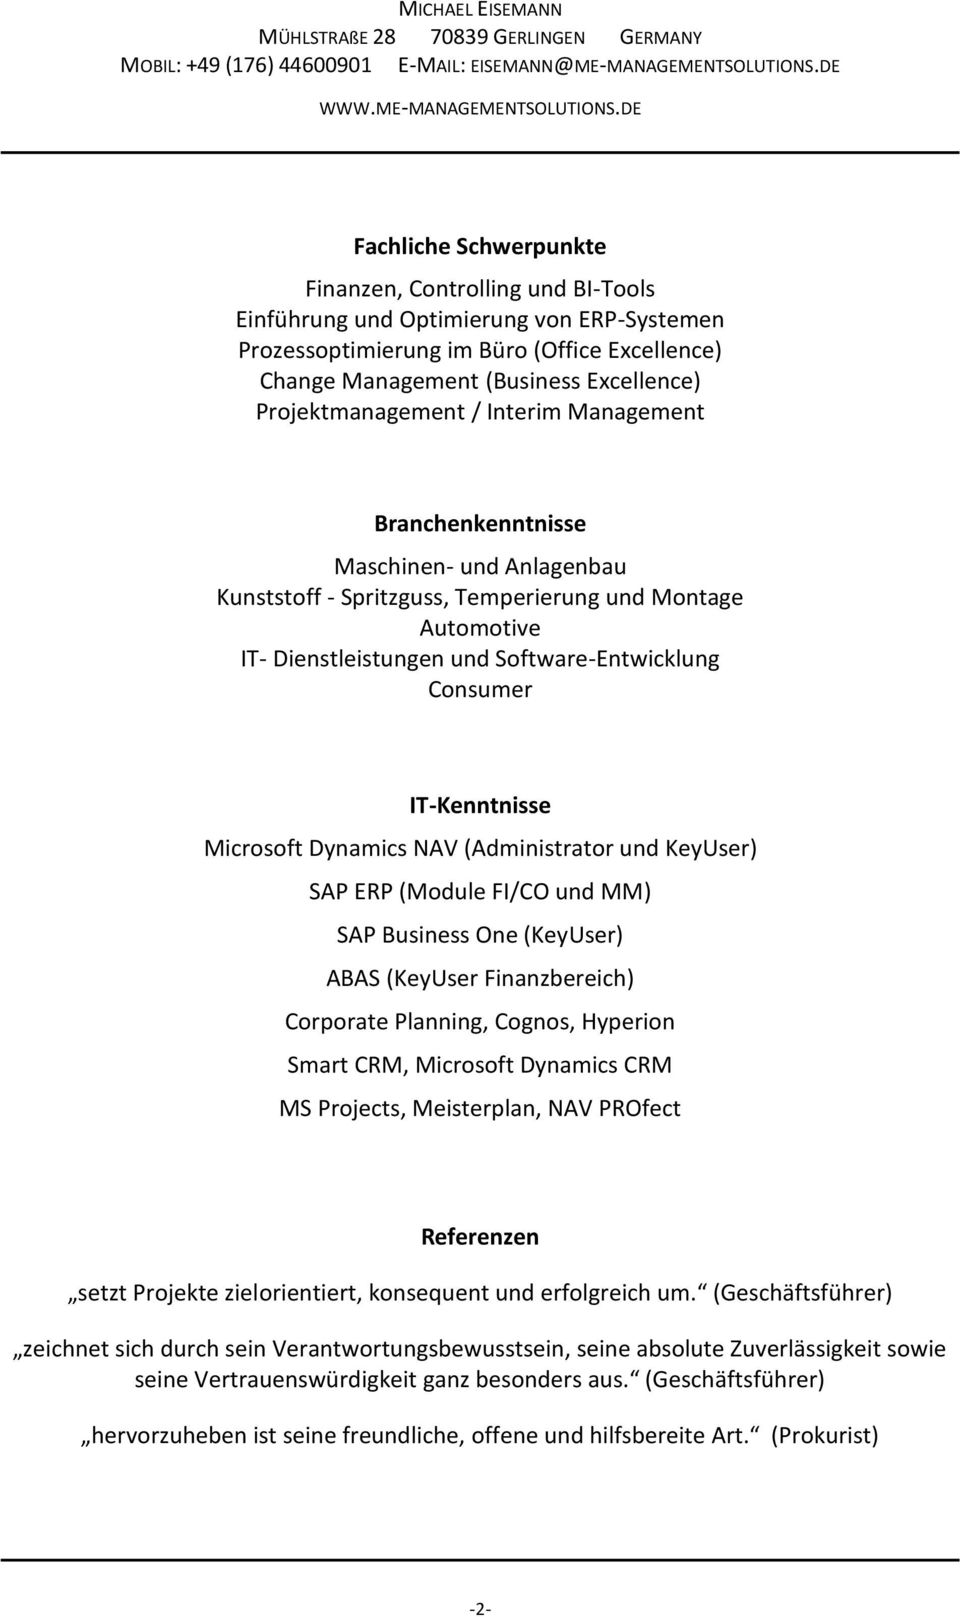 IT-Kenntnisse Microsoft Dynamics NAV (Administrator und KeyUser) SAP ERP (Module FI/CO und MM) SAP Business One (KeyUser) ABAS (KeyUser Finanzbereich) Corporate Planning, Cognos, Hyperion Smart CRM,